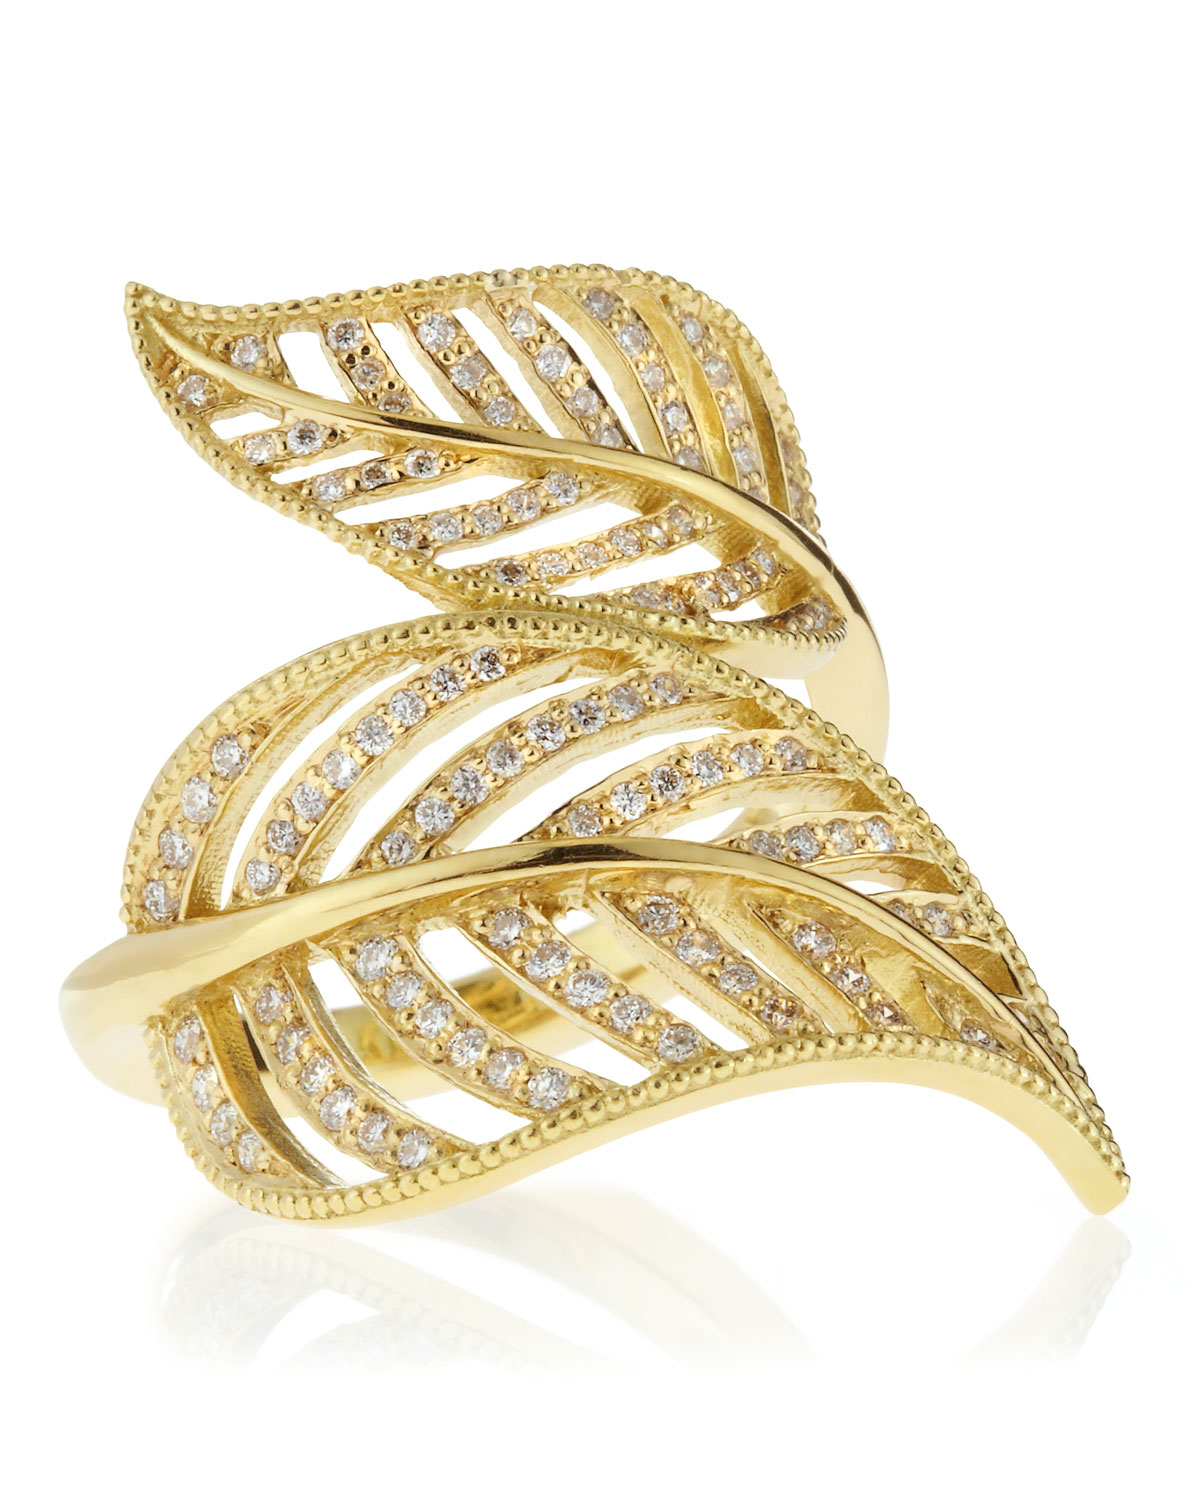 Penny Preville 18k Diamond Leaf Band Ring, Size 6